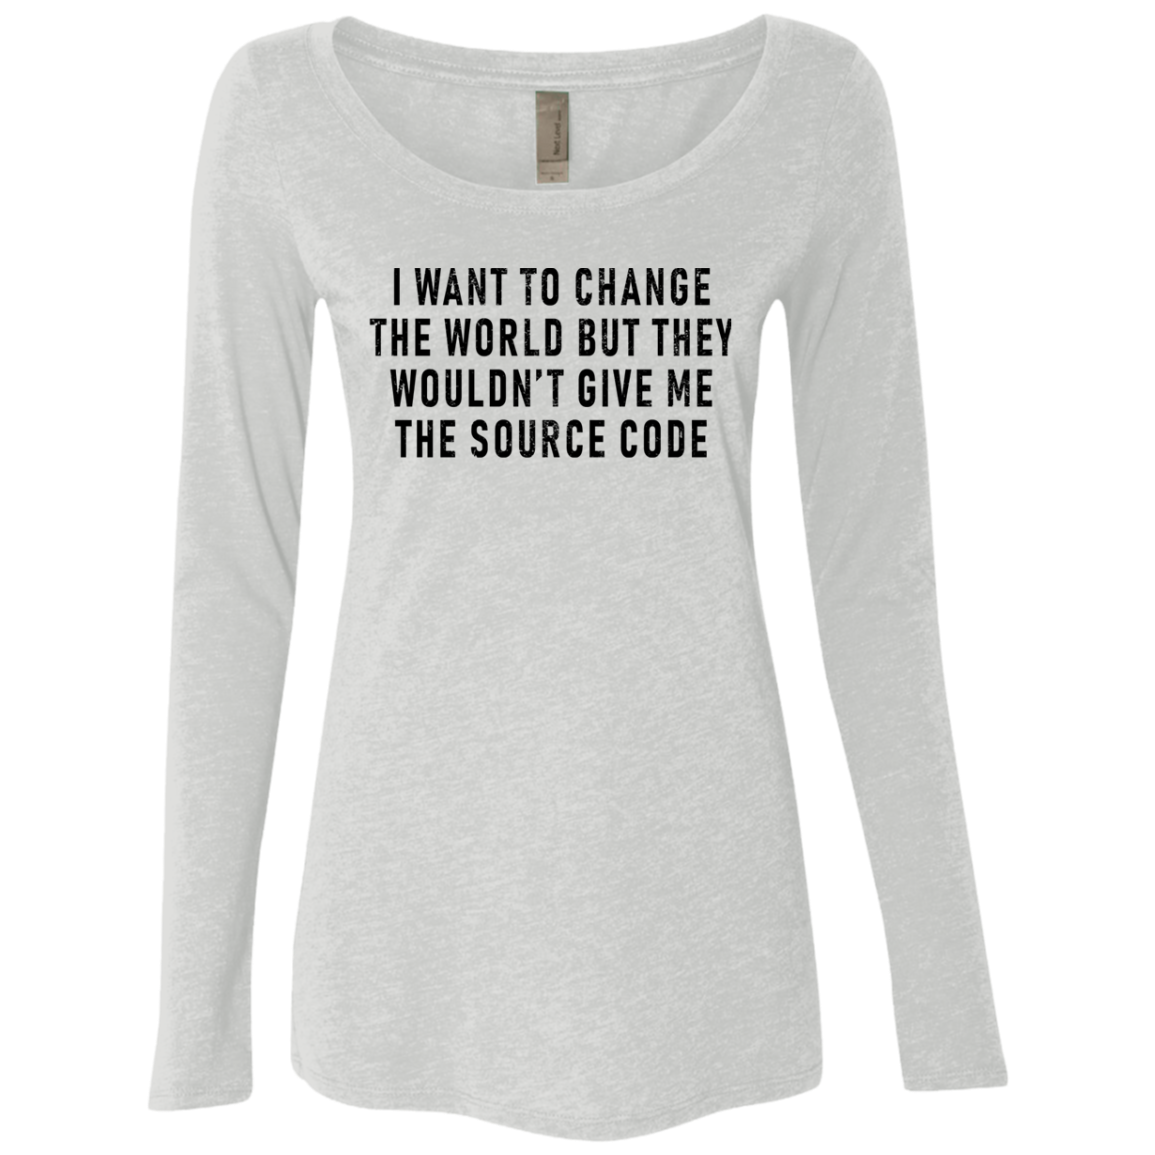 I Want To Change The World But They Won't Give Me The Source Code Women's Long Sleeve Tee